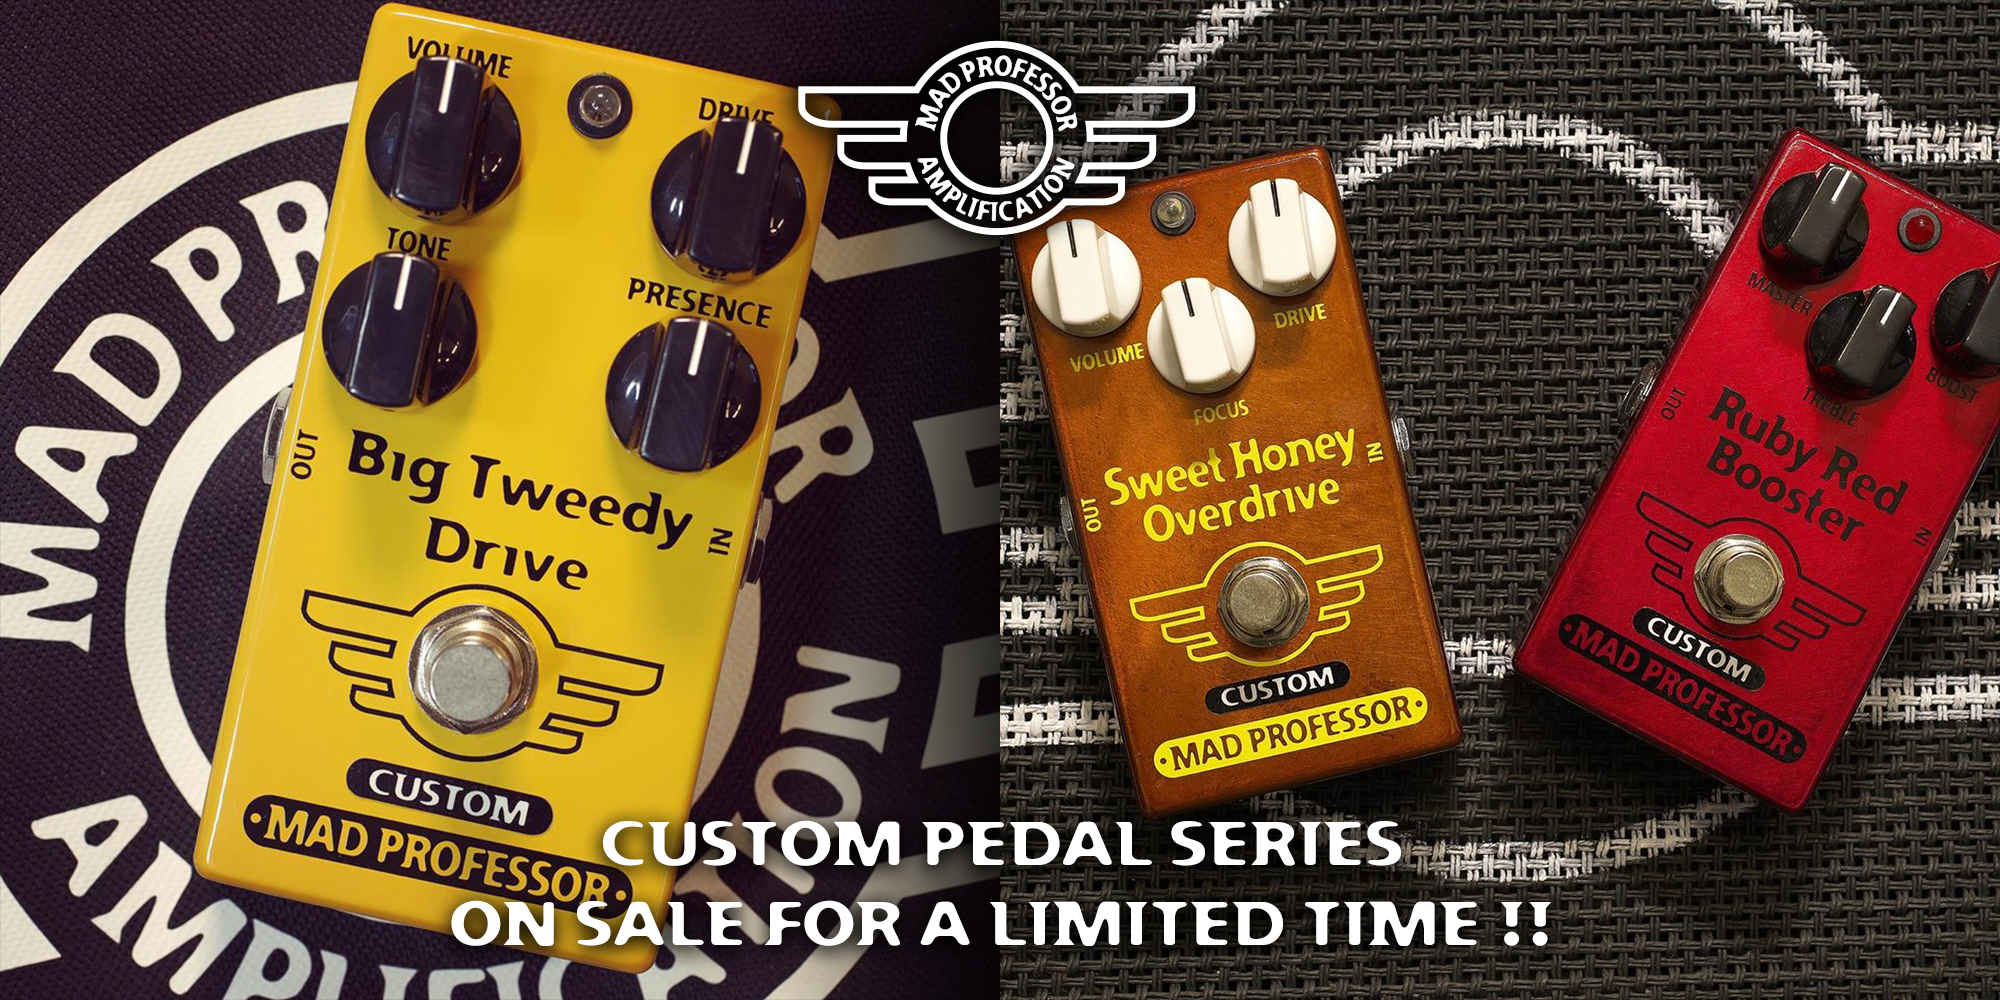 Mad Professor Custom Pedal Series